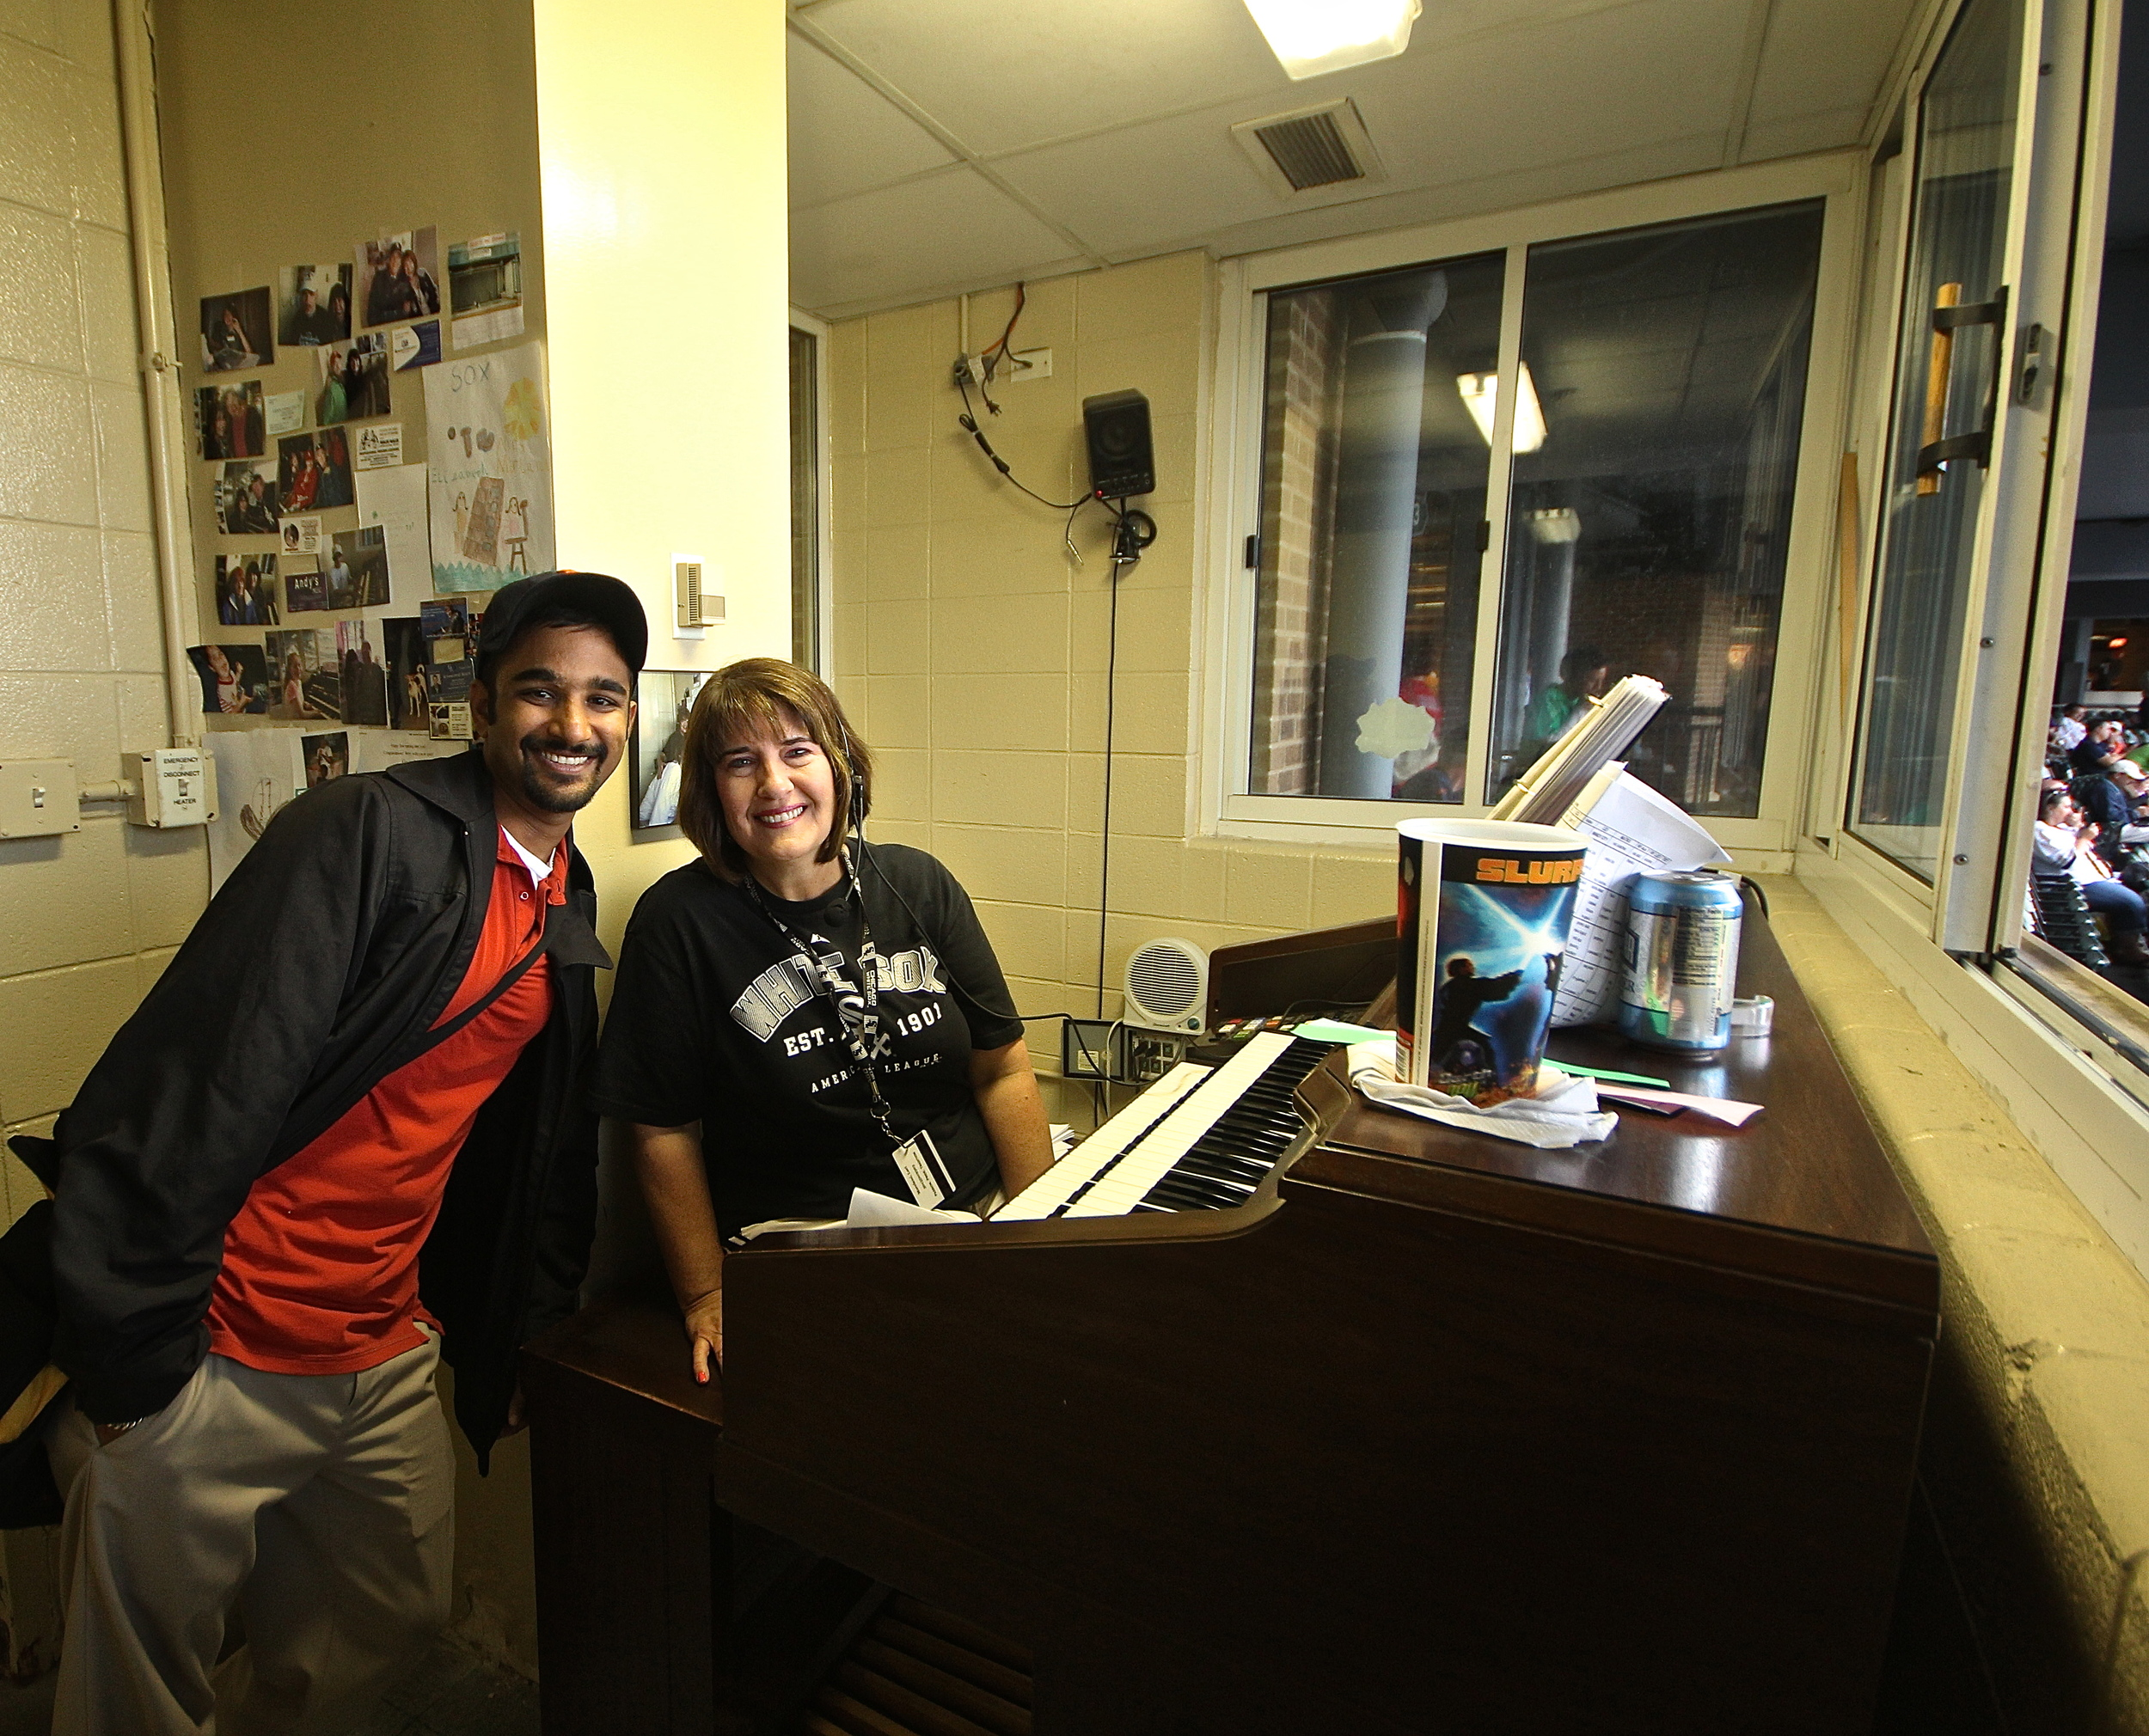 Me and Lori the organist